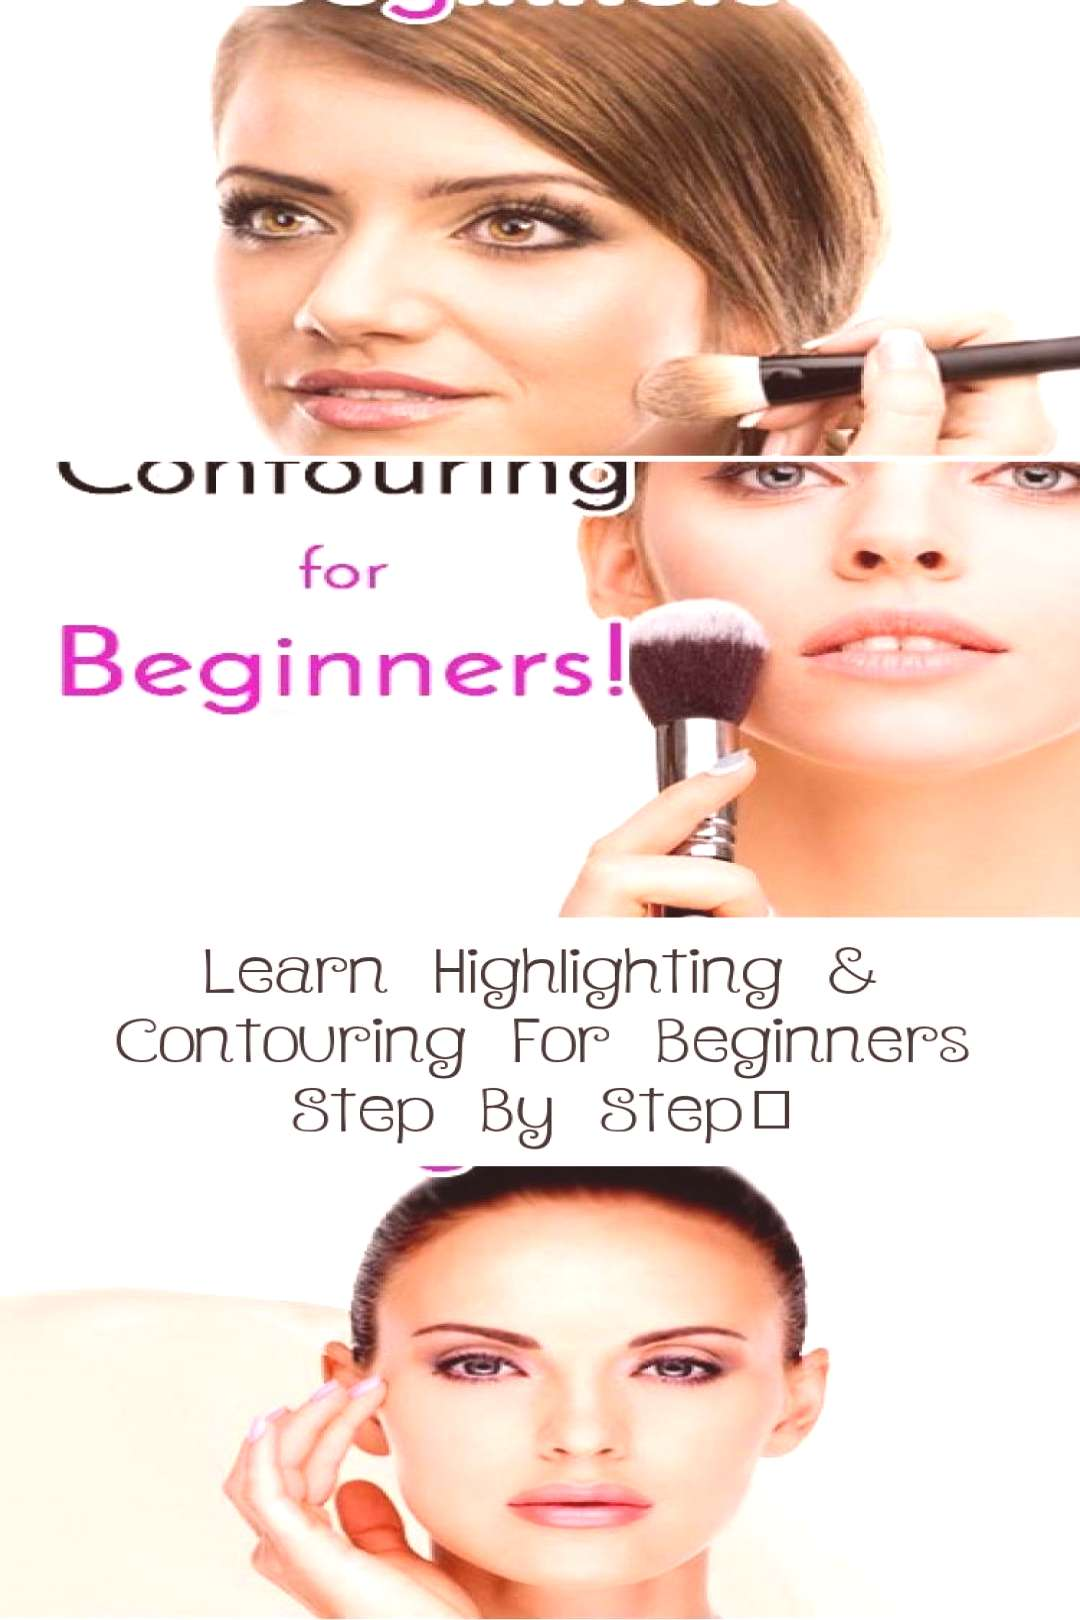 Learn Highlighting amp Contouring For Beginners Step By Step… - Make-Up - Highlightingcontouring fo